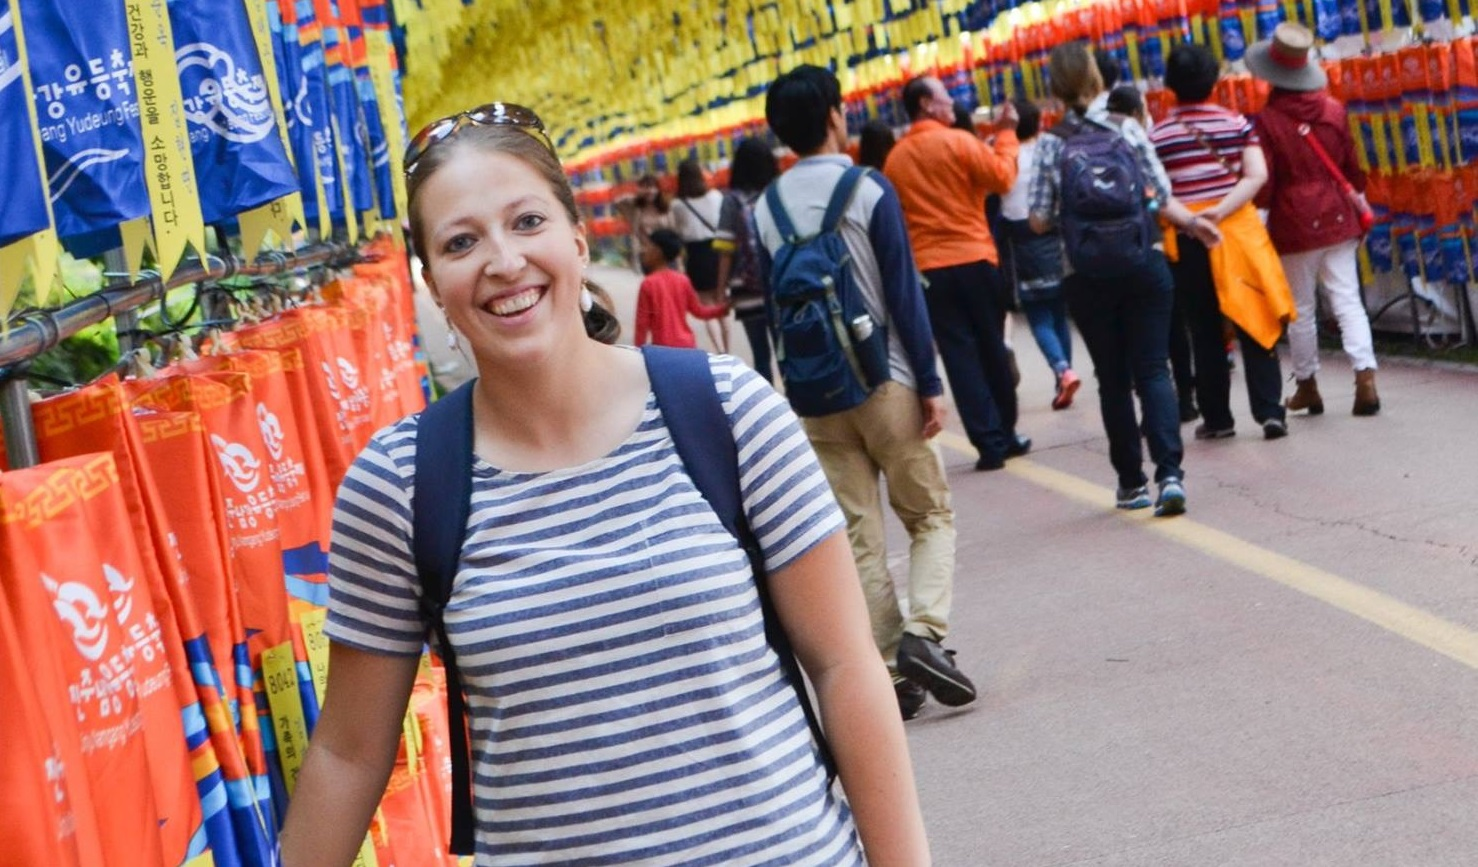 Hillary Veitch poses at Lantern Festival